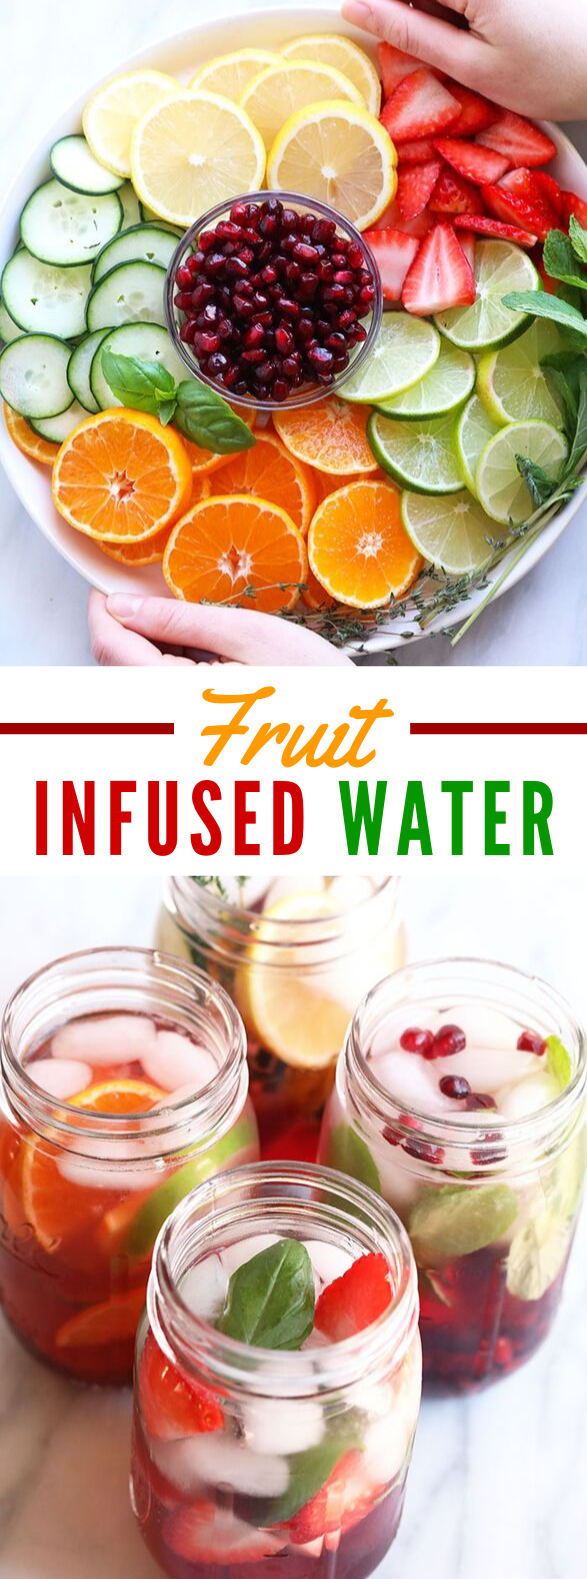 4 FRUIT INFUSED WATER RECIPES #drinks #healthy